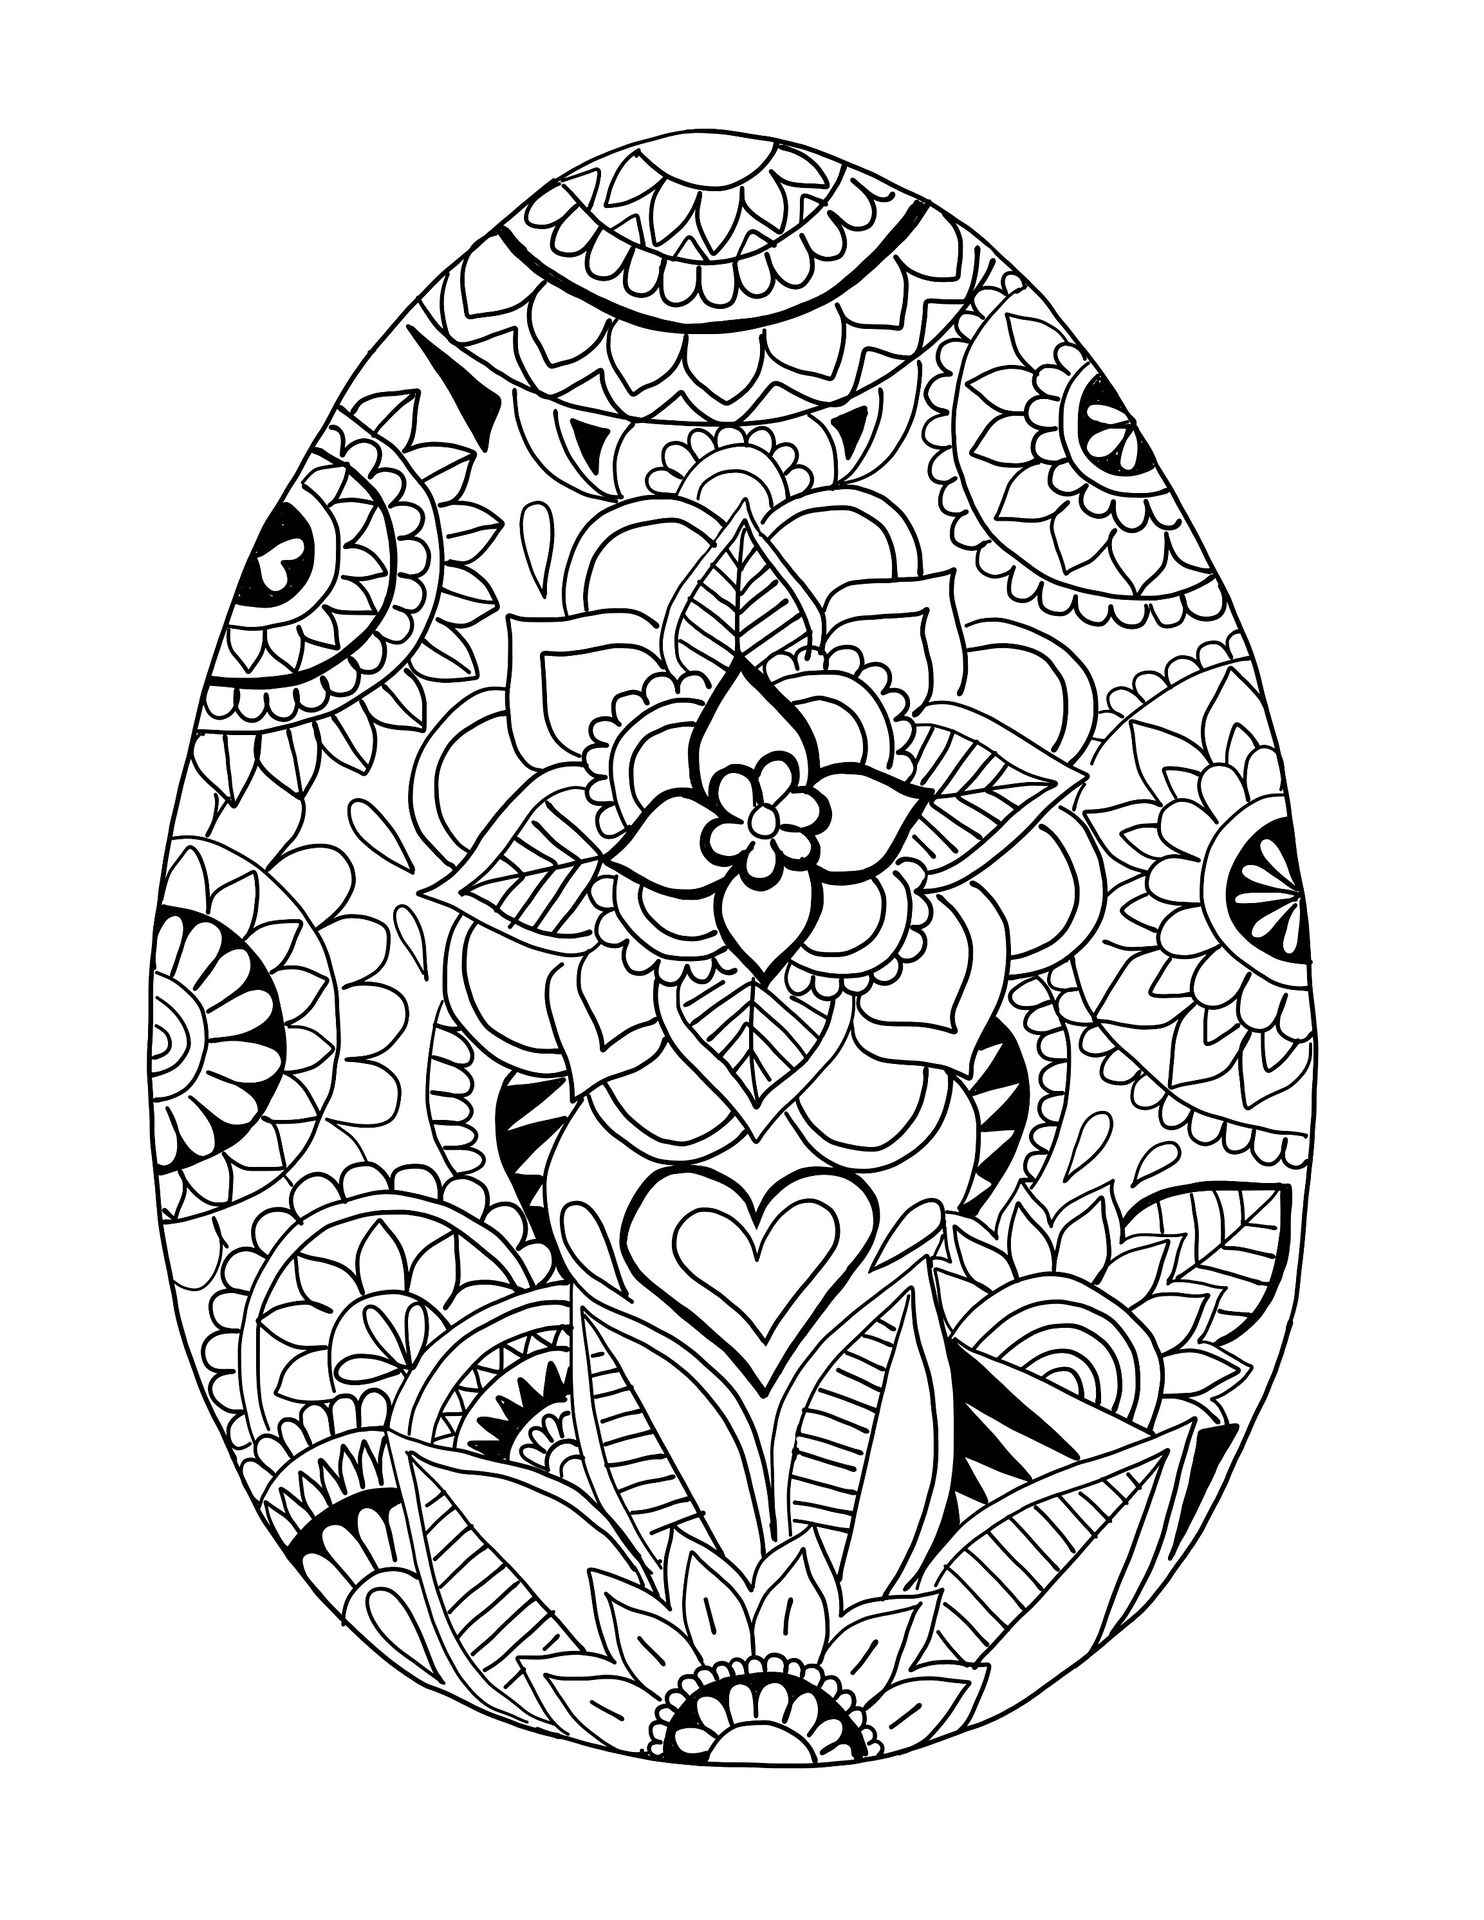 Easter Egg Coloring Page Patterned With Flowers